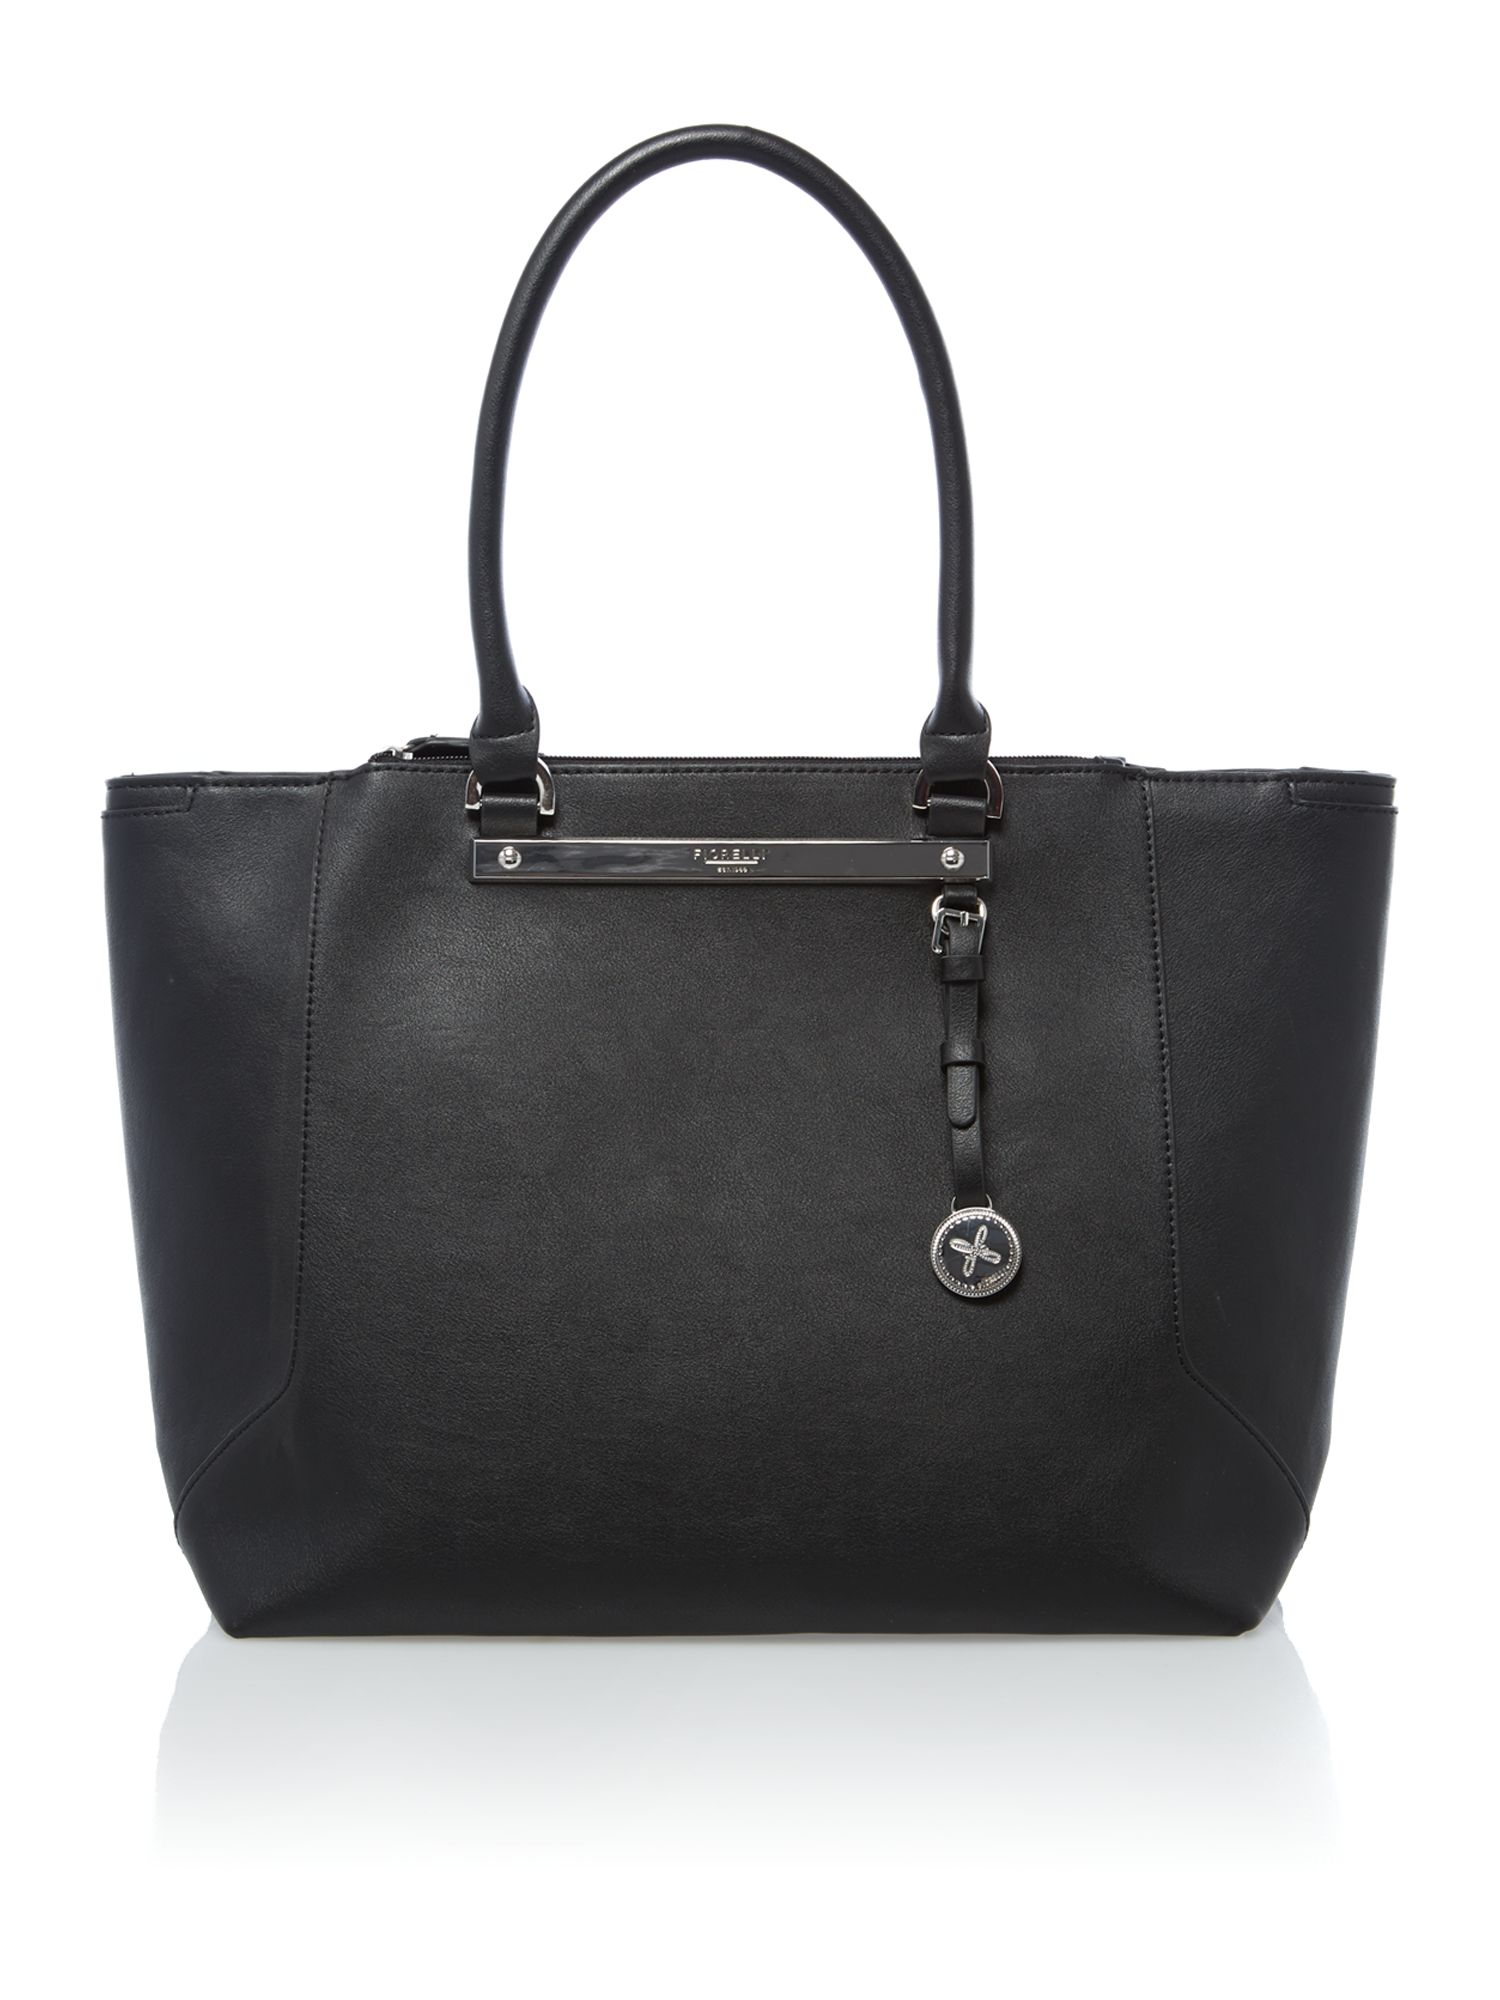 Paris black tote bag